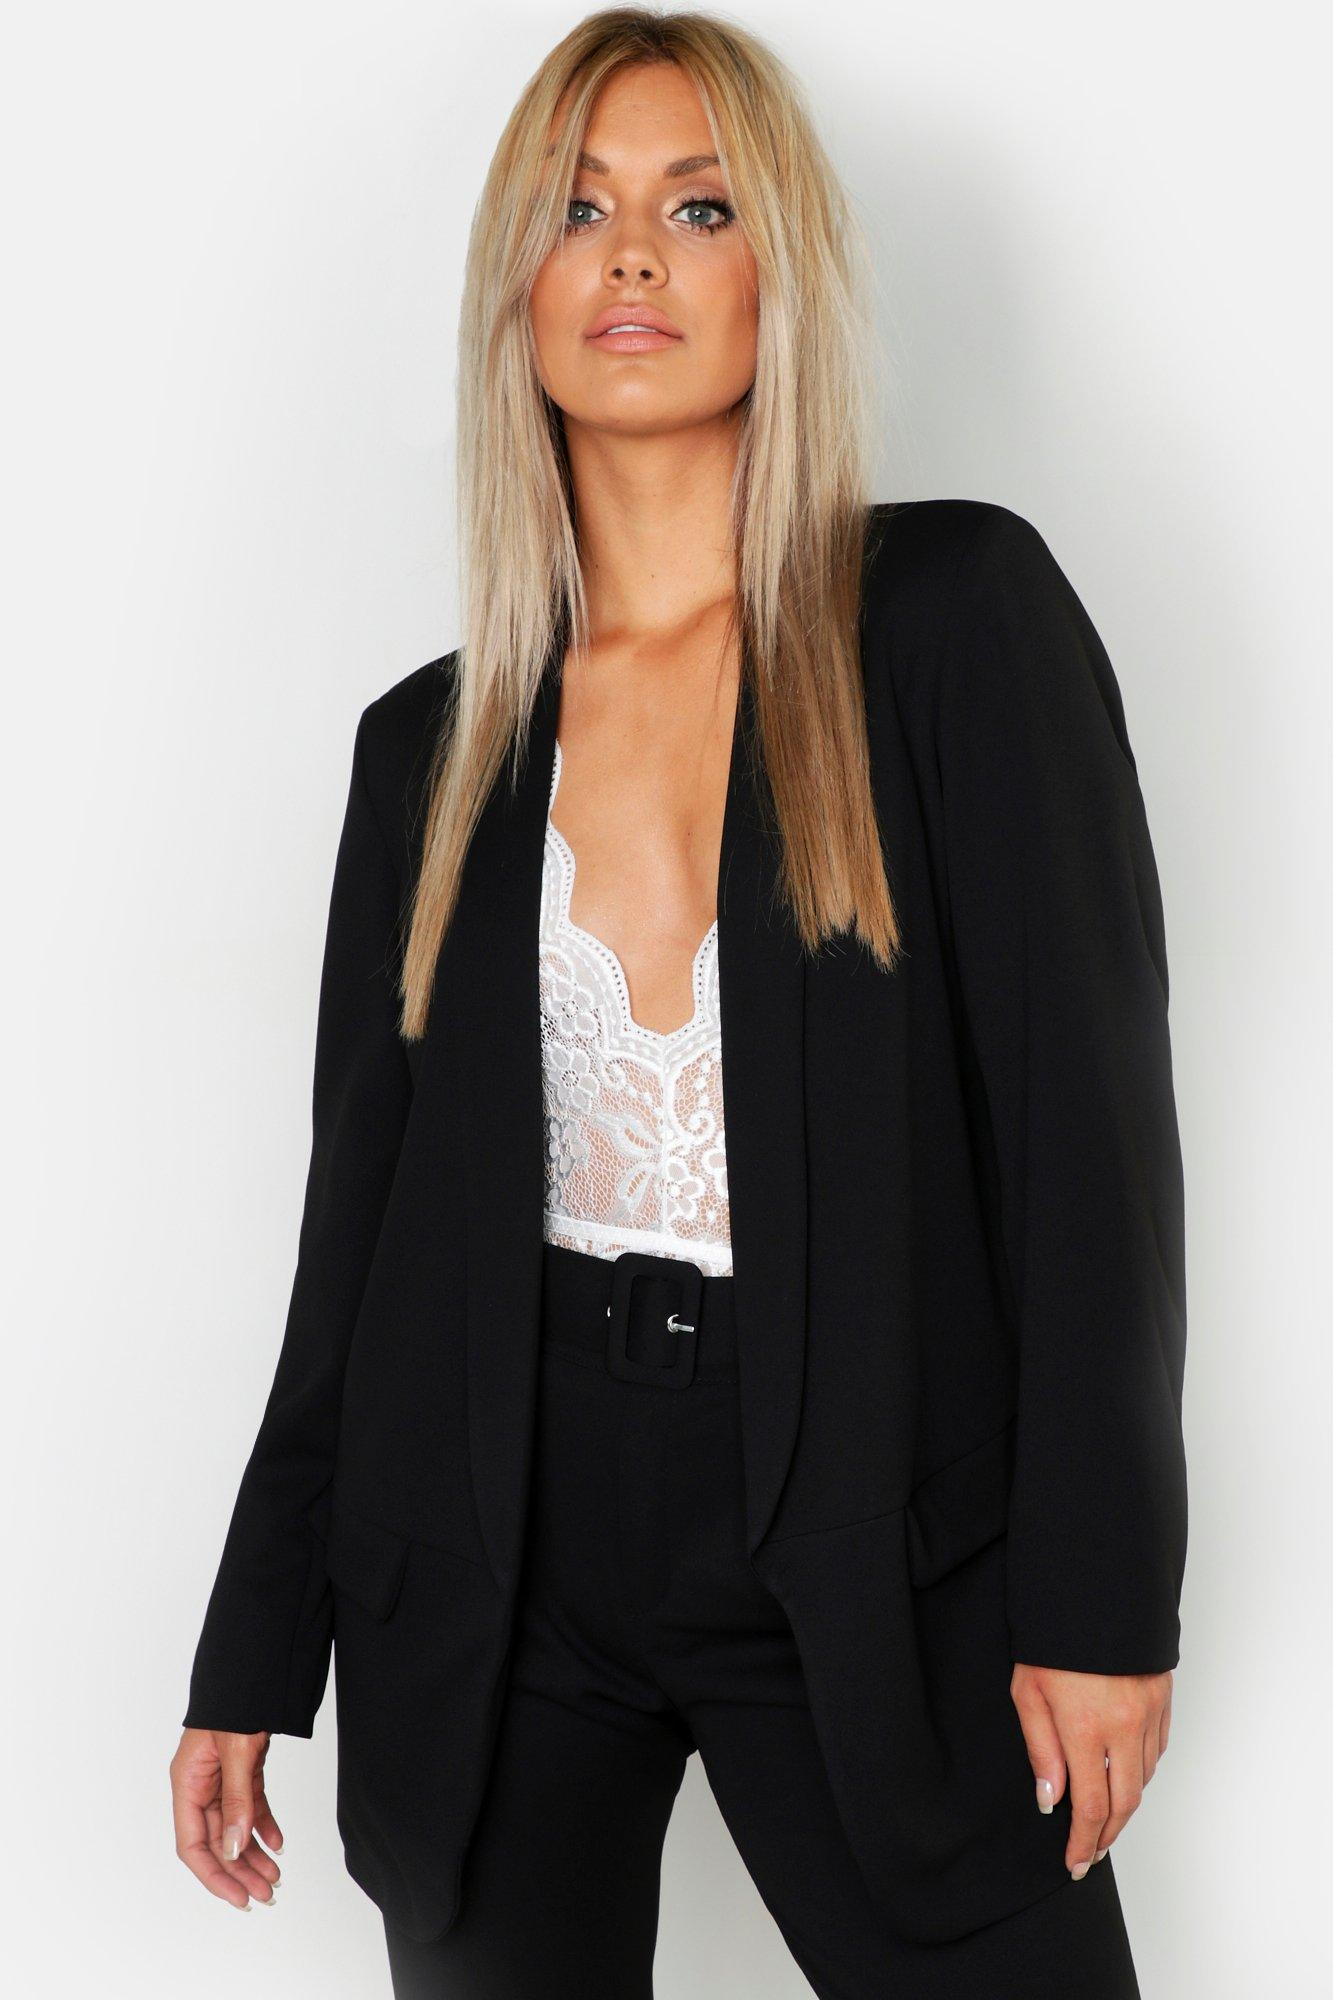 boohoo Womens Plus Tailored Blazer - Black - 16, Black